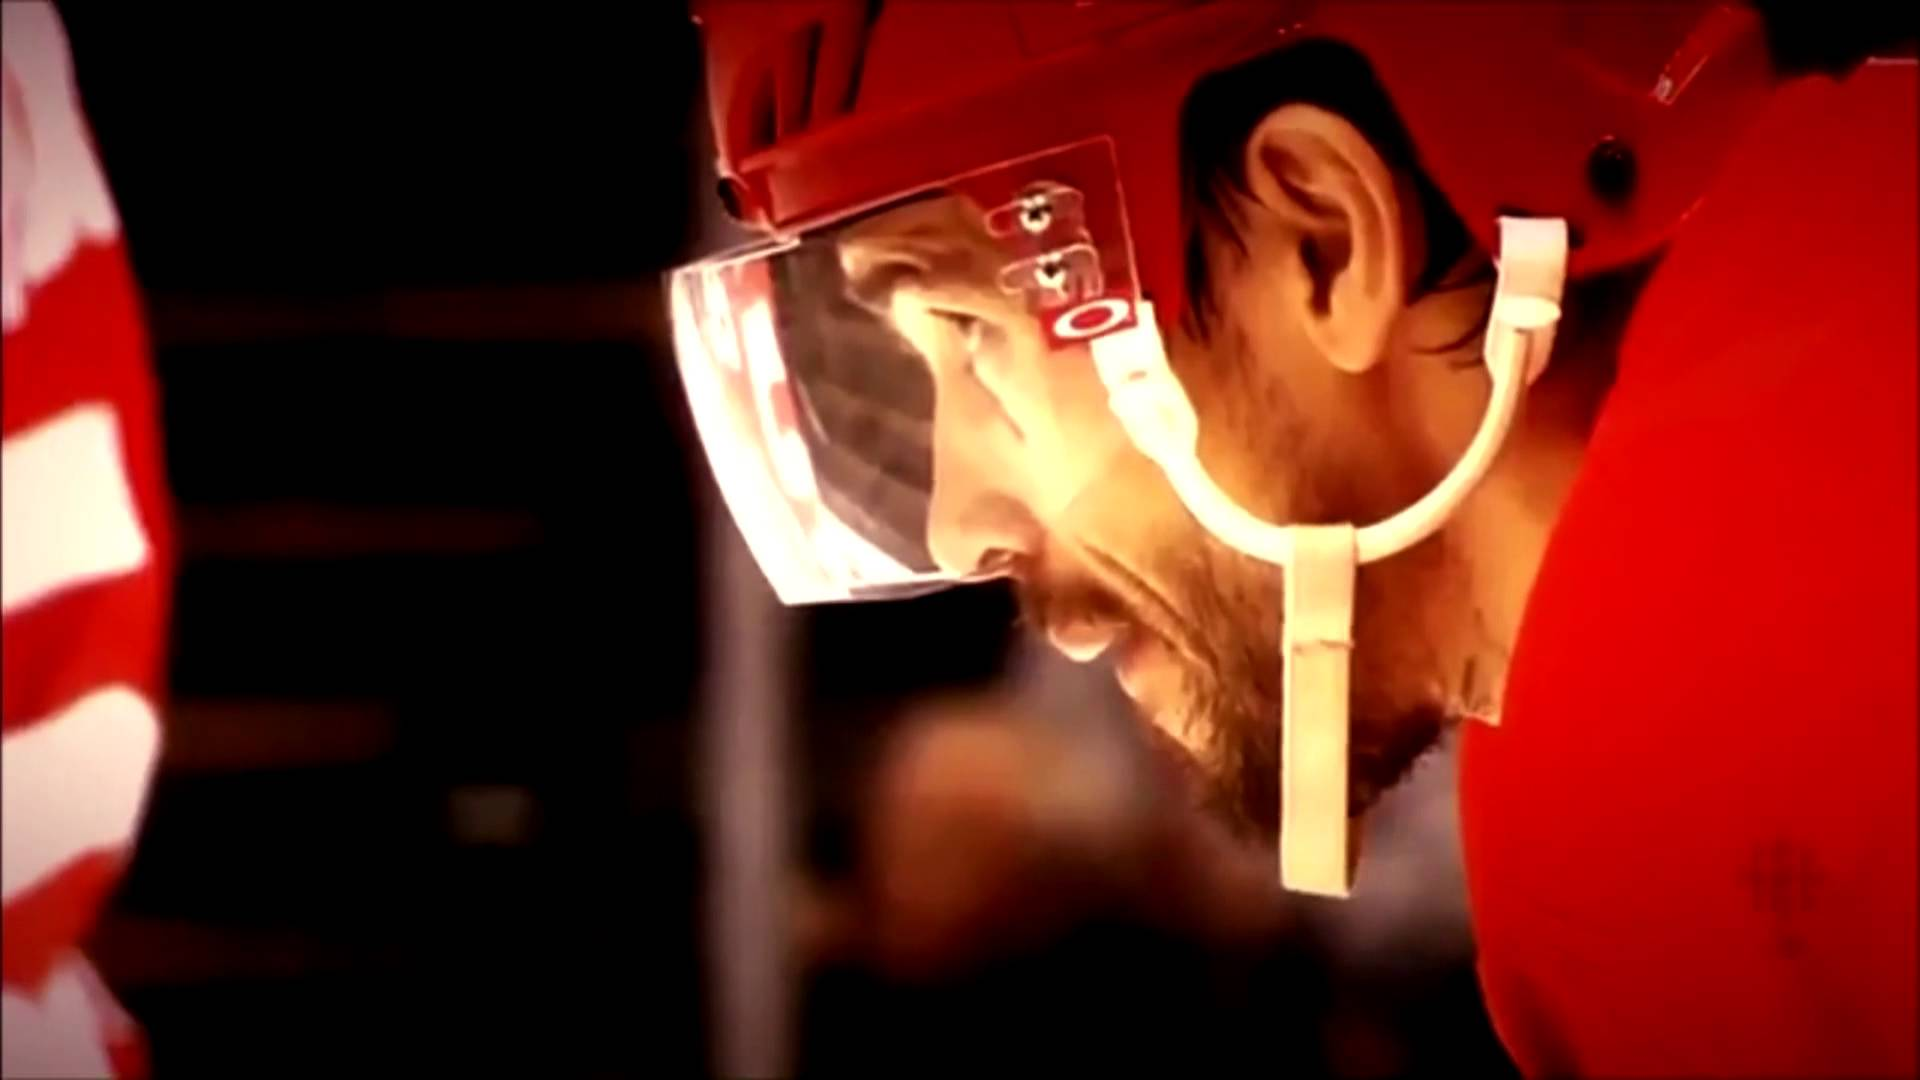 [VIDEO] Hockey motivation video with background speeches